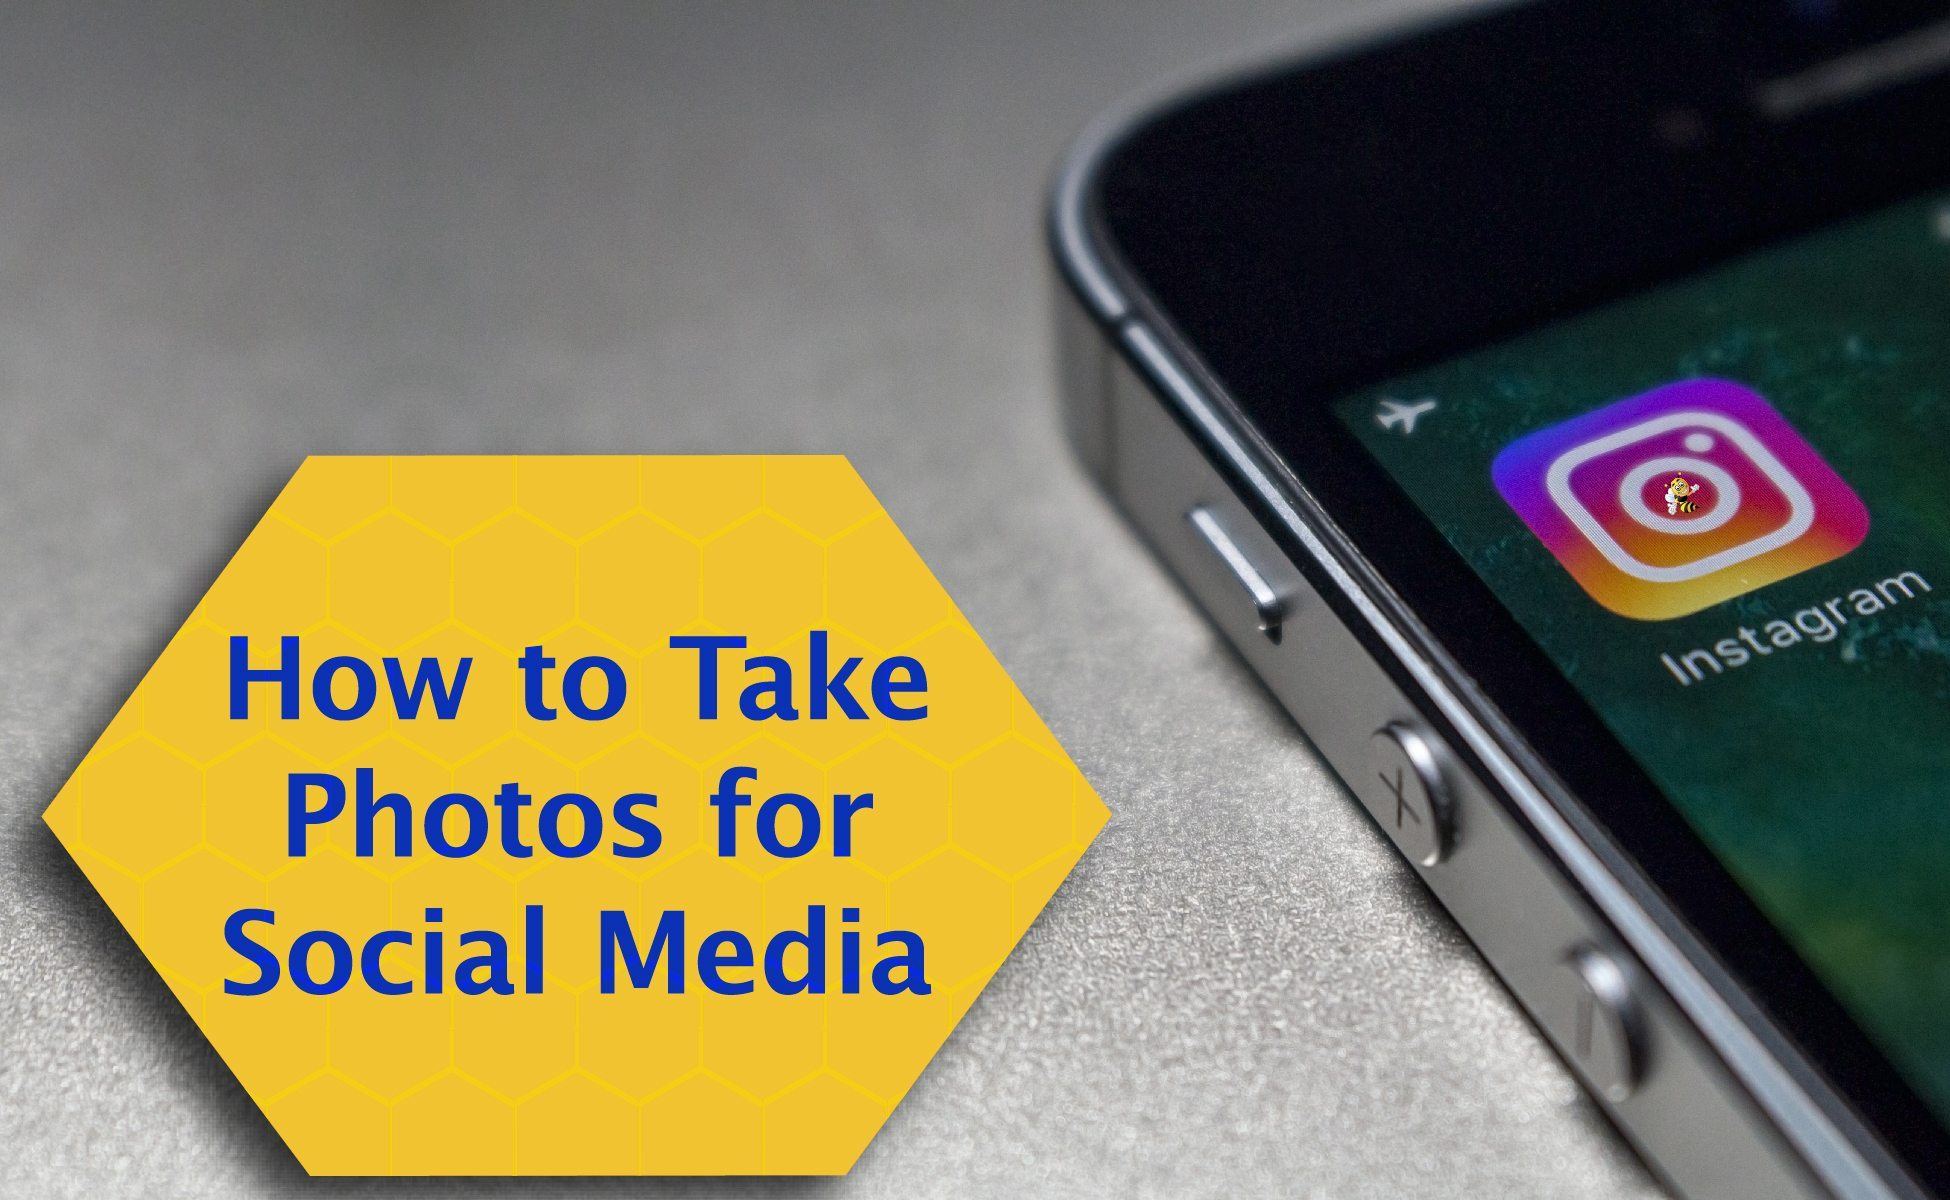 How to Take Photos for Social Media